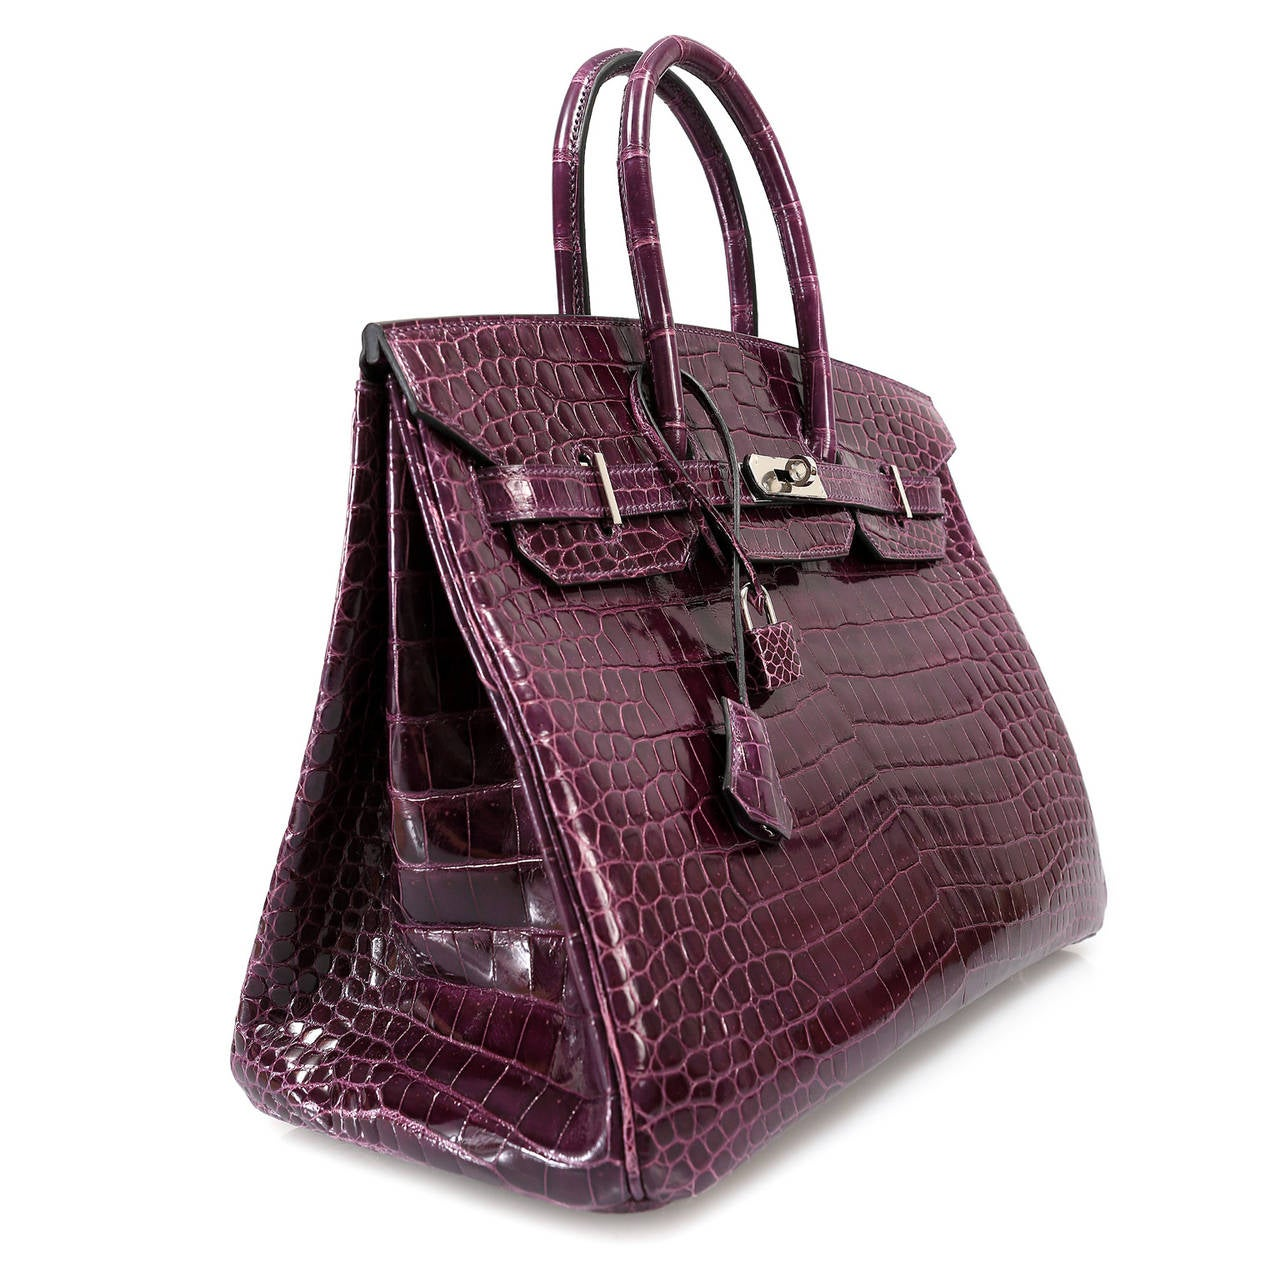 Hermes Cassis Purple Porosus Crocodile Birkin 35 cm In New Never_worn Condition For Sale In Malibu, CA